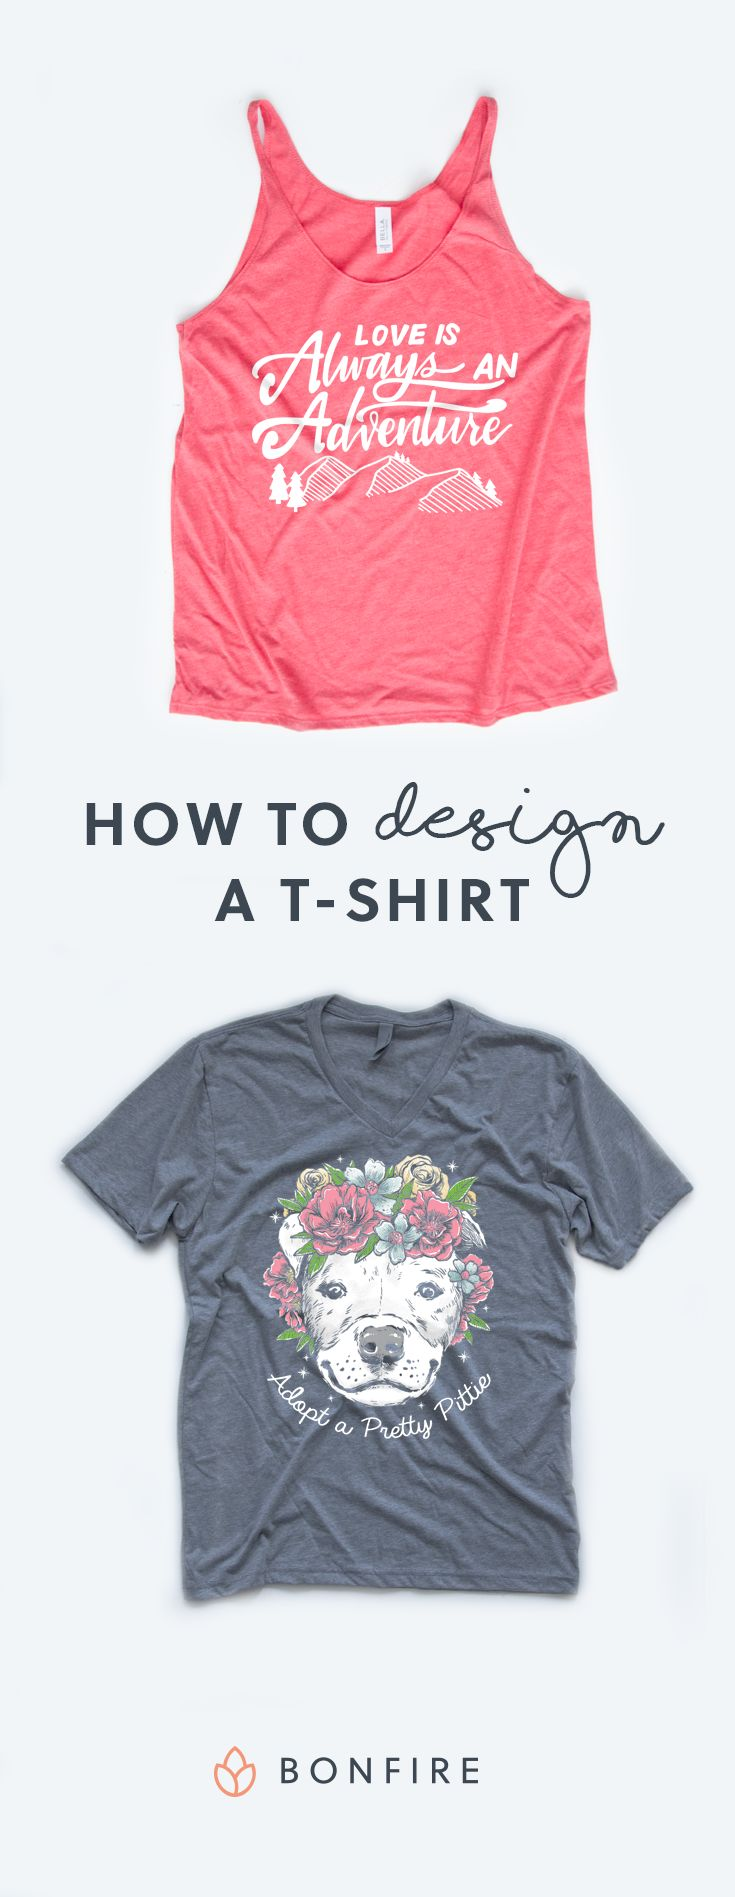 Design your own t shirt lesson plan - A Beginner S Guide To Designing Awesome T Shirts Learn How To Choose Colors